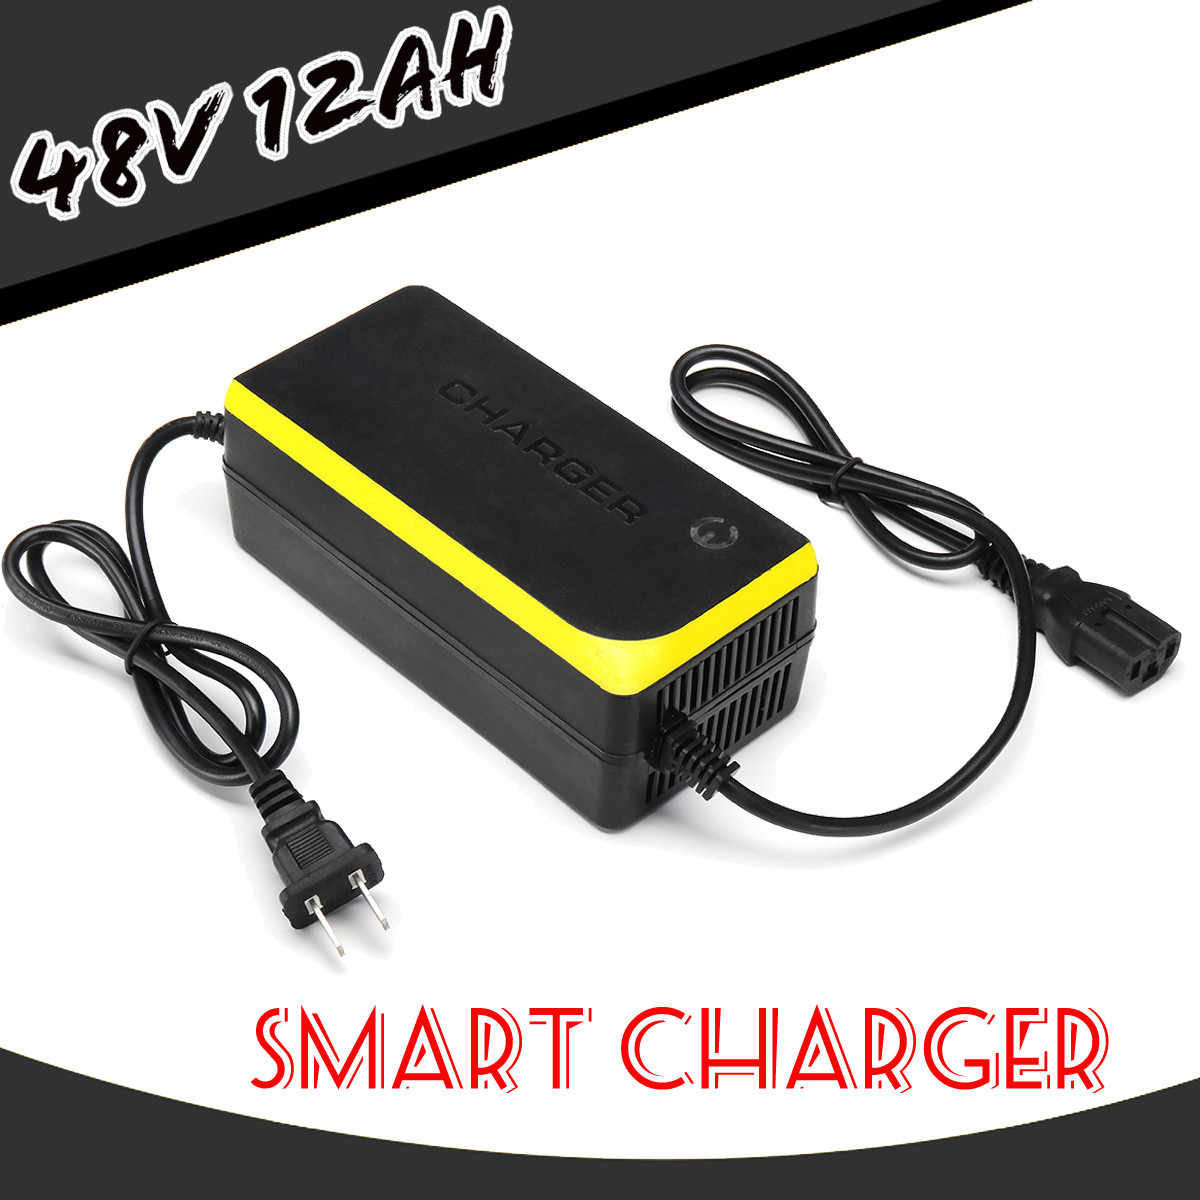 48V 12AH Lead Acid Battery Charger for Electric Bicycle Bike Scooters Chargers